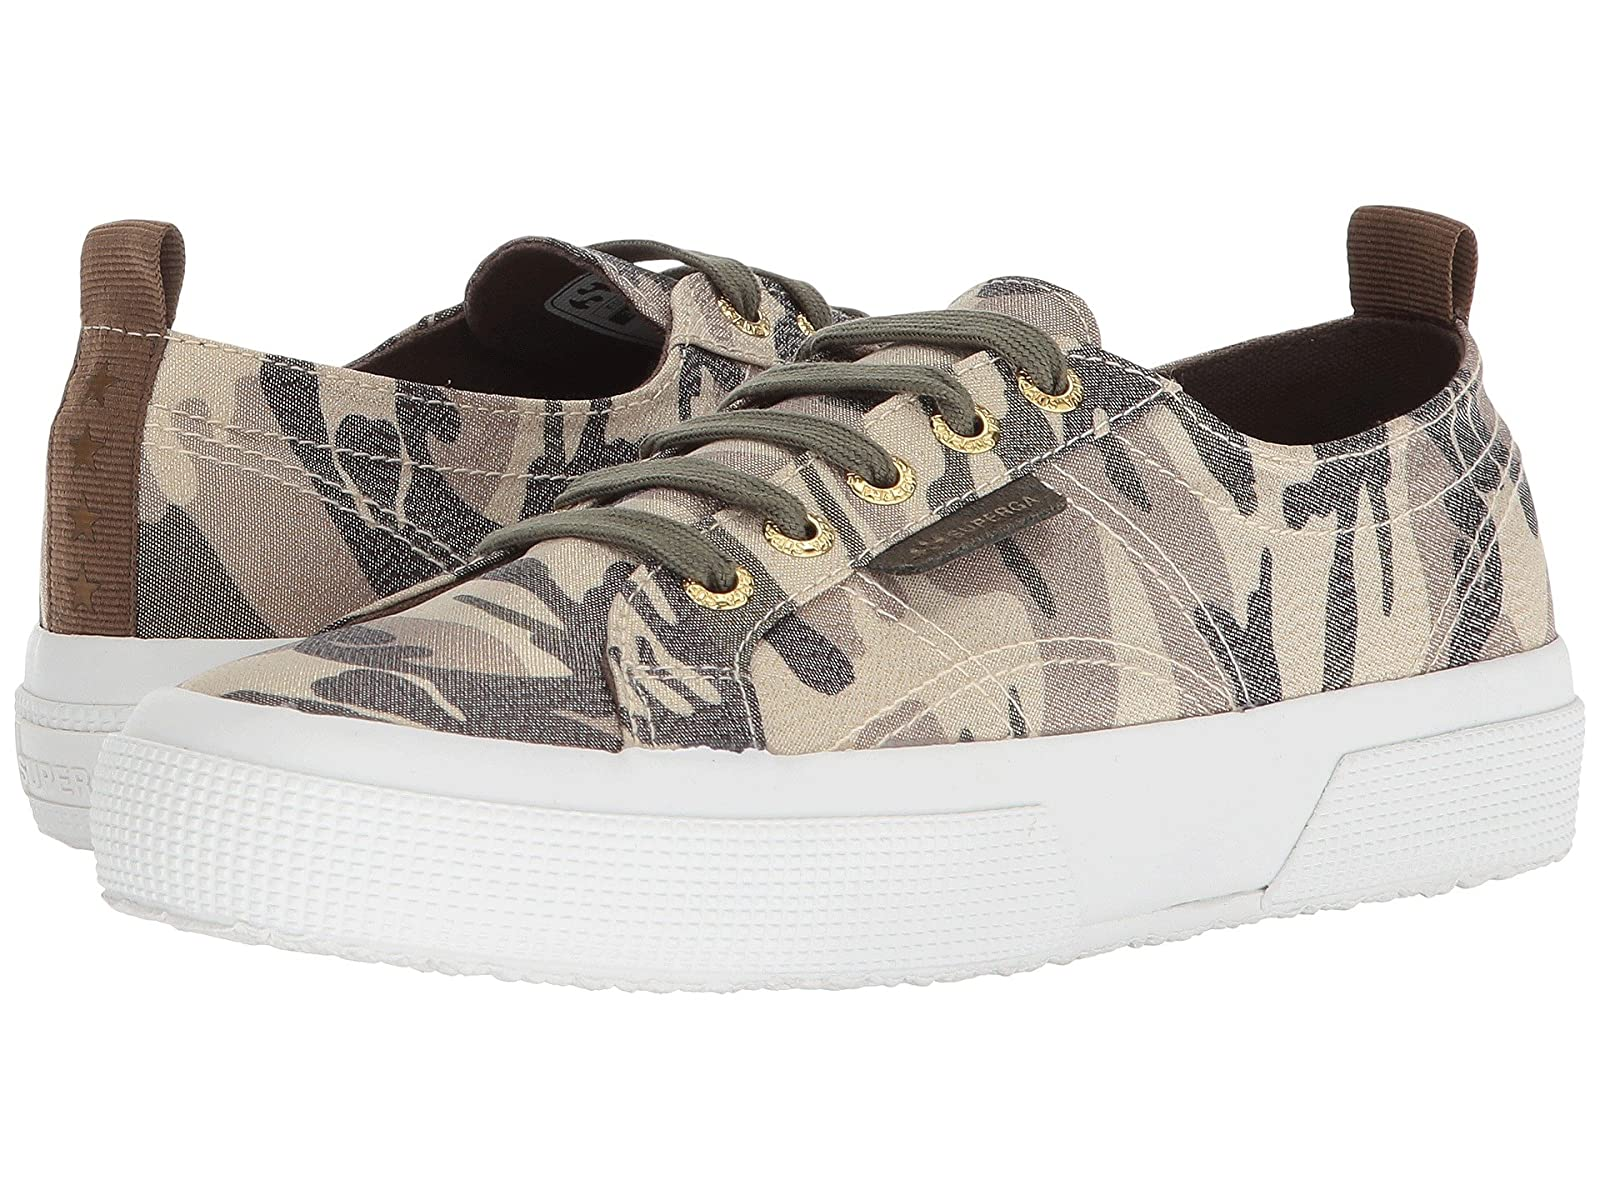 Superga 2750 Lamecamow SneakerCheap and distinctive eye-catching shoes